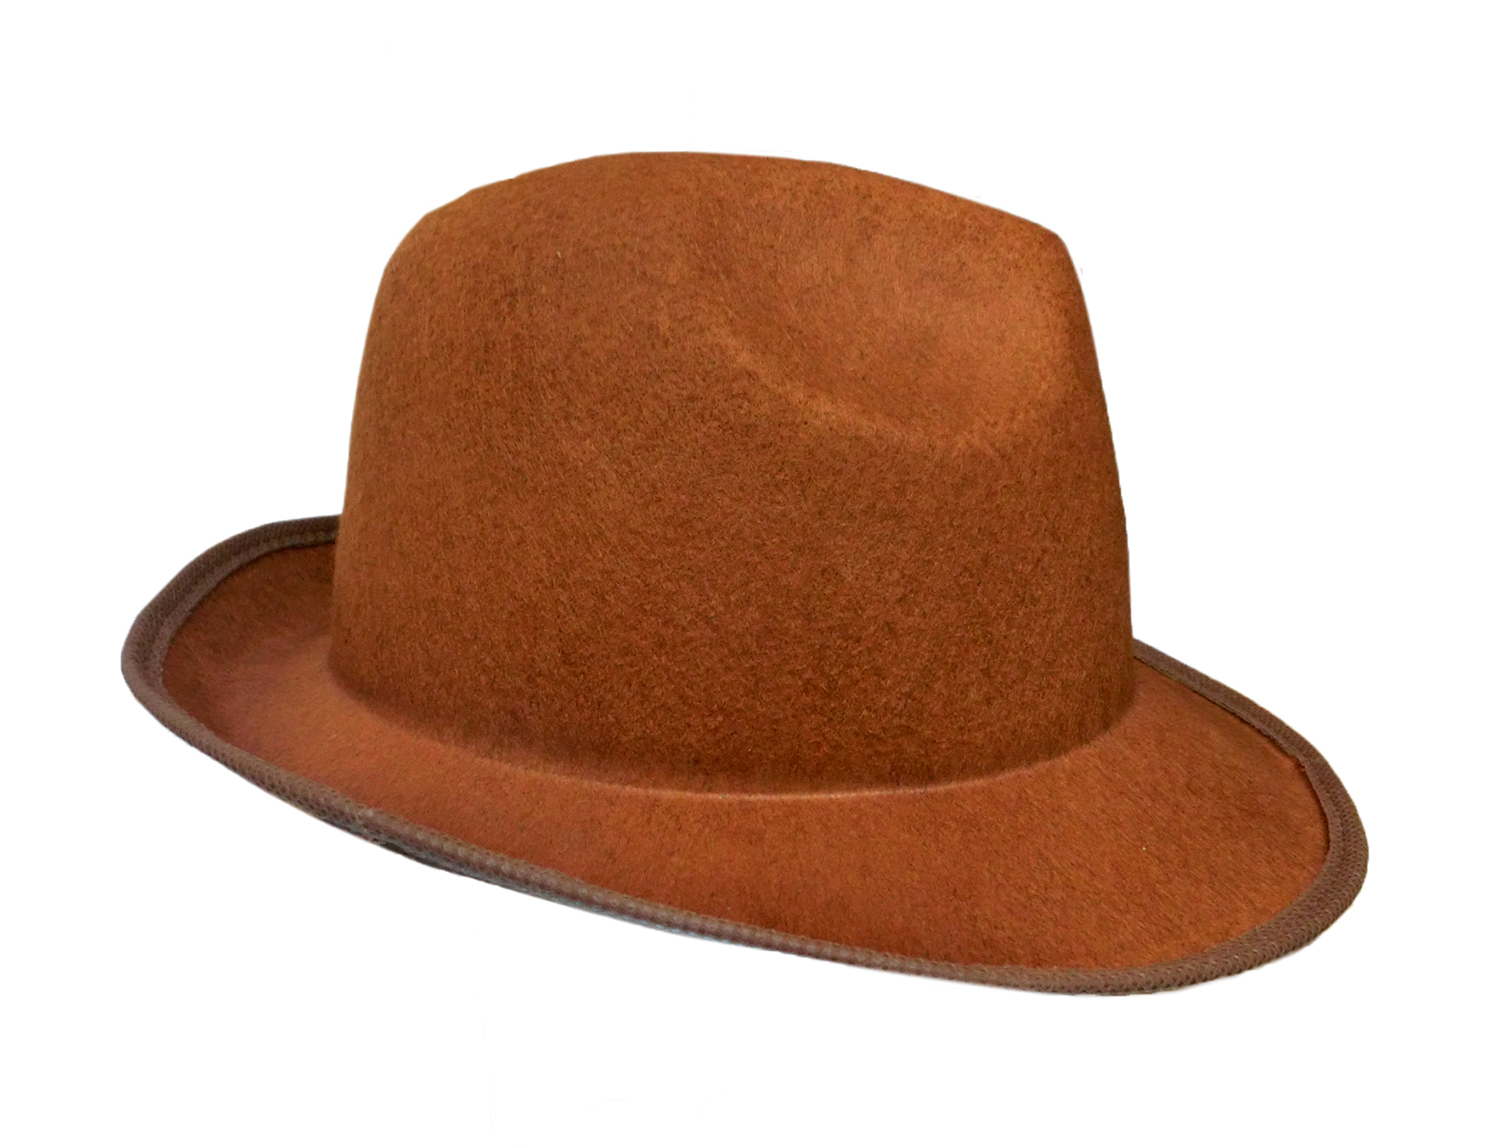 57833dbe36 Details about Top Hat Brown Gangster Felt Fedora 20S Mens Night Out Costume  Accessory